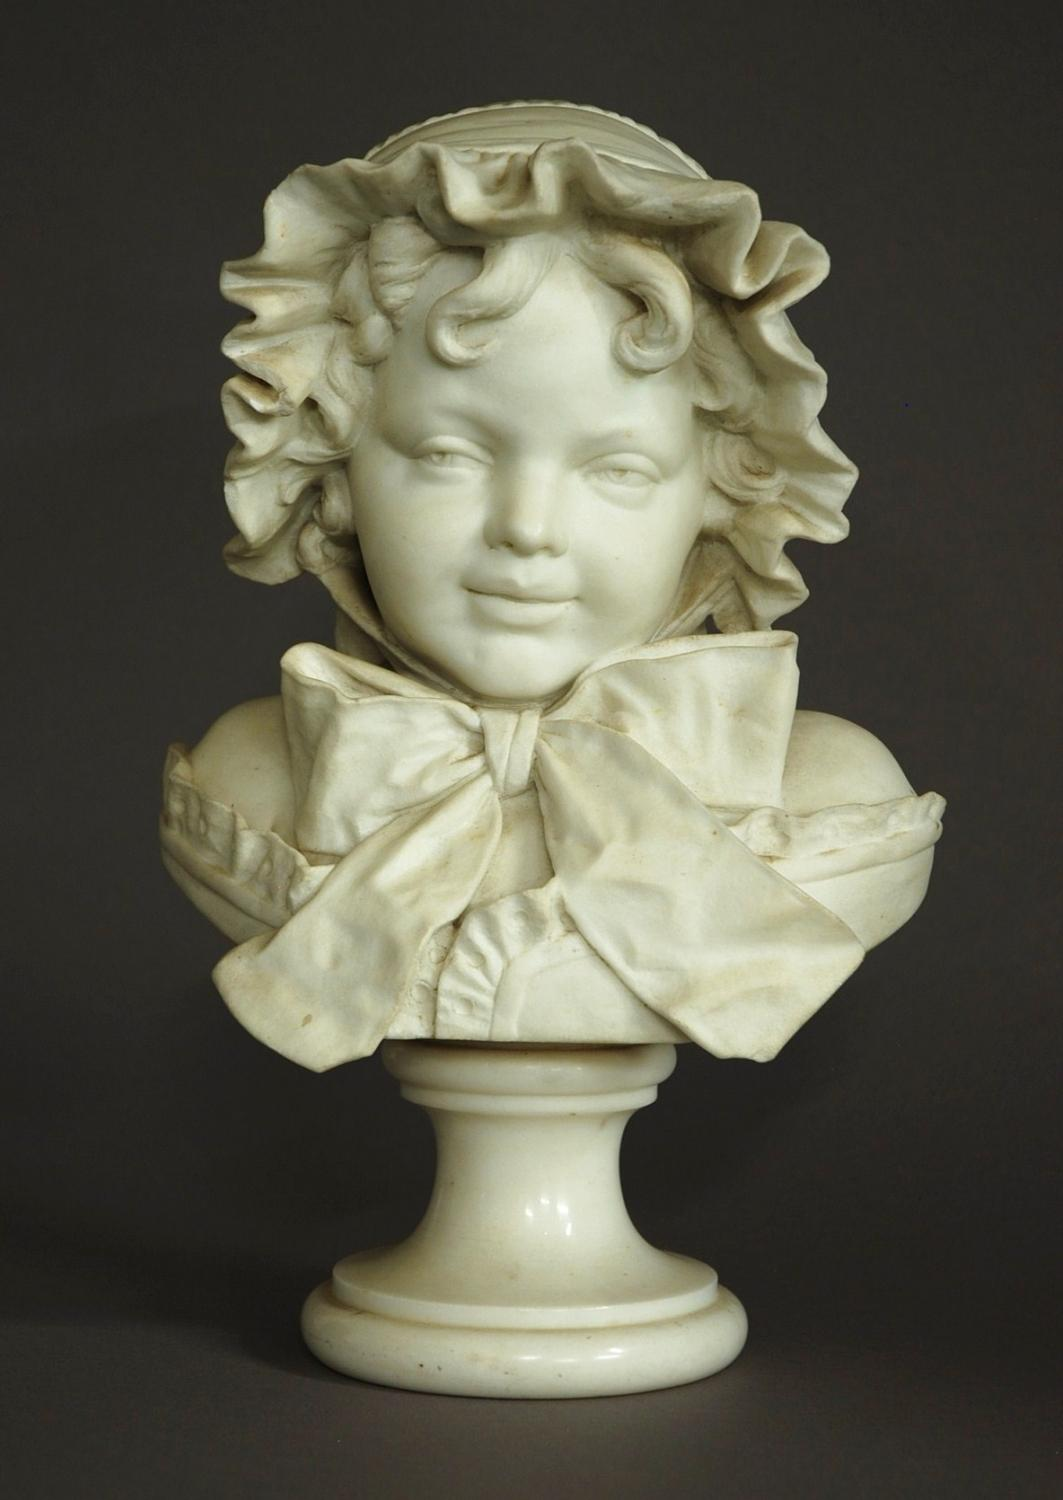 19thc carrara marble figure of a young girl